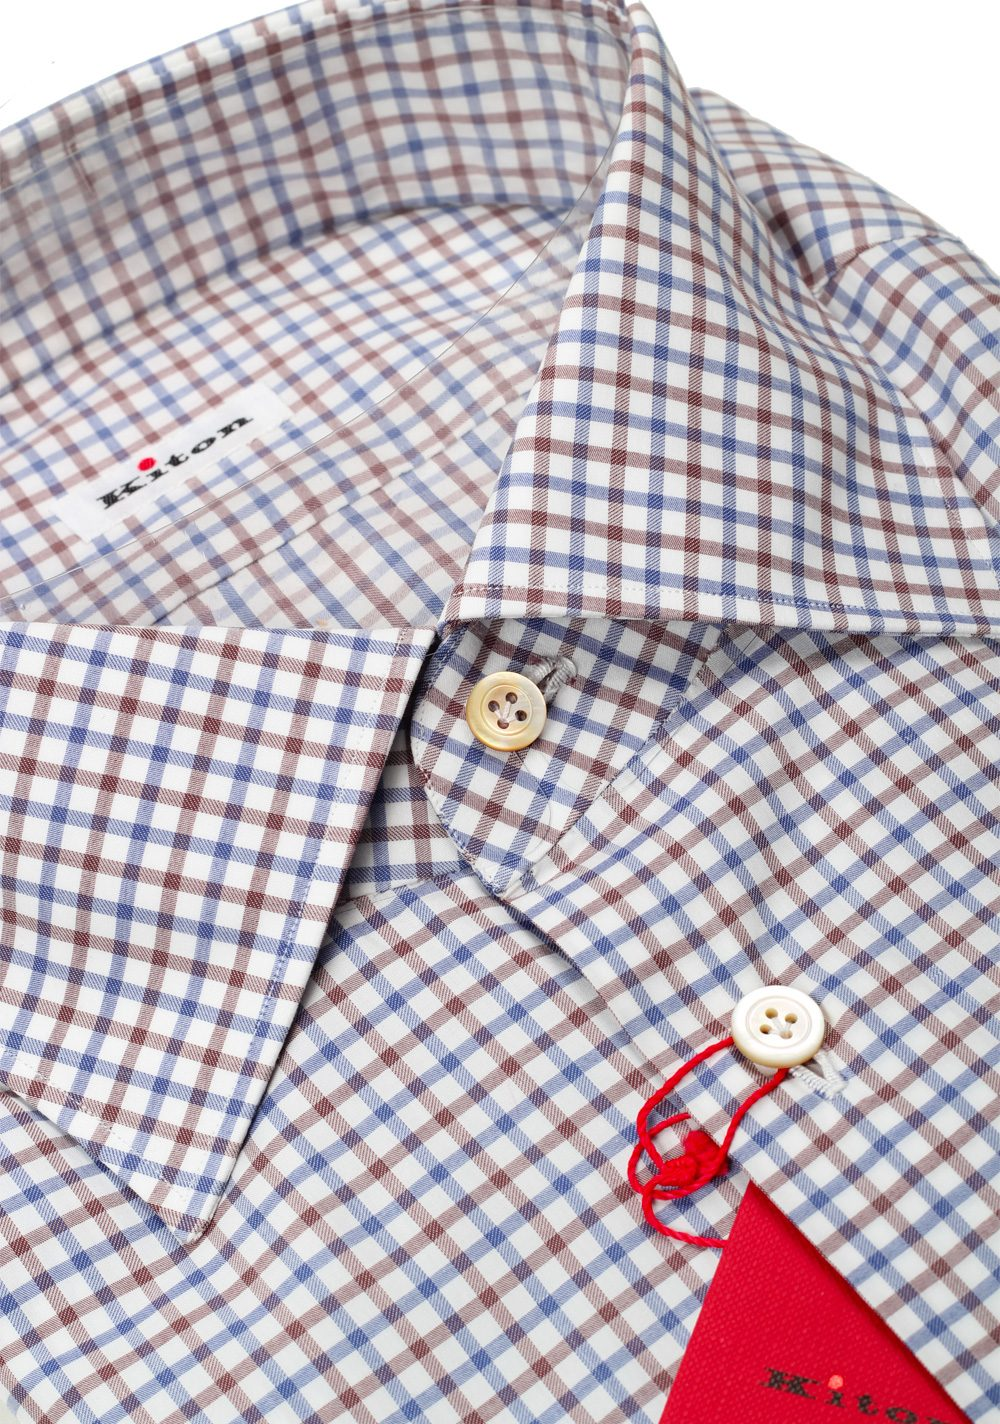 Kiton Checked White Blue Brown Shirt 45 / 18 U.S. | Costume Limité